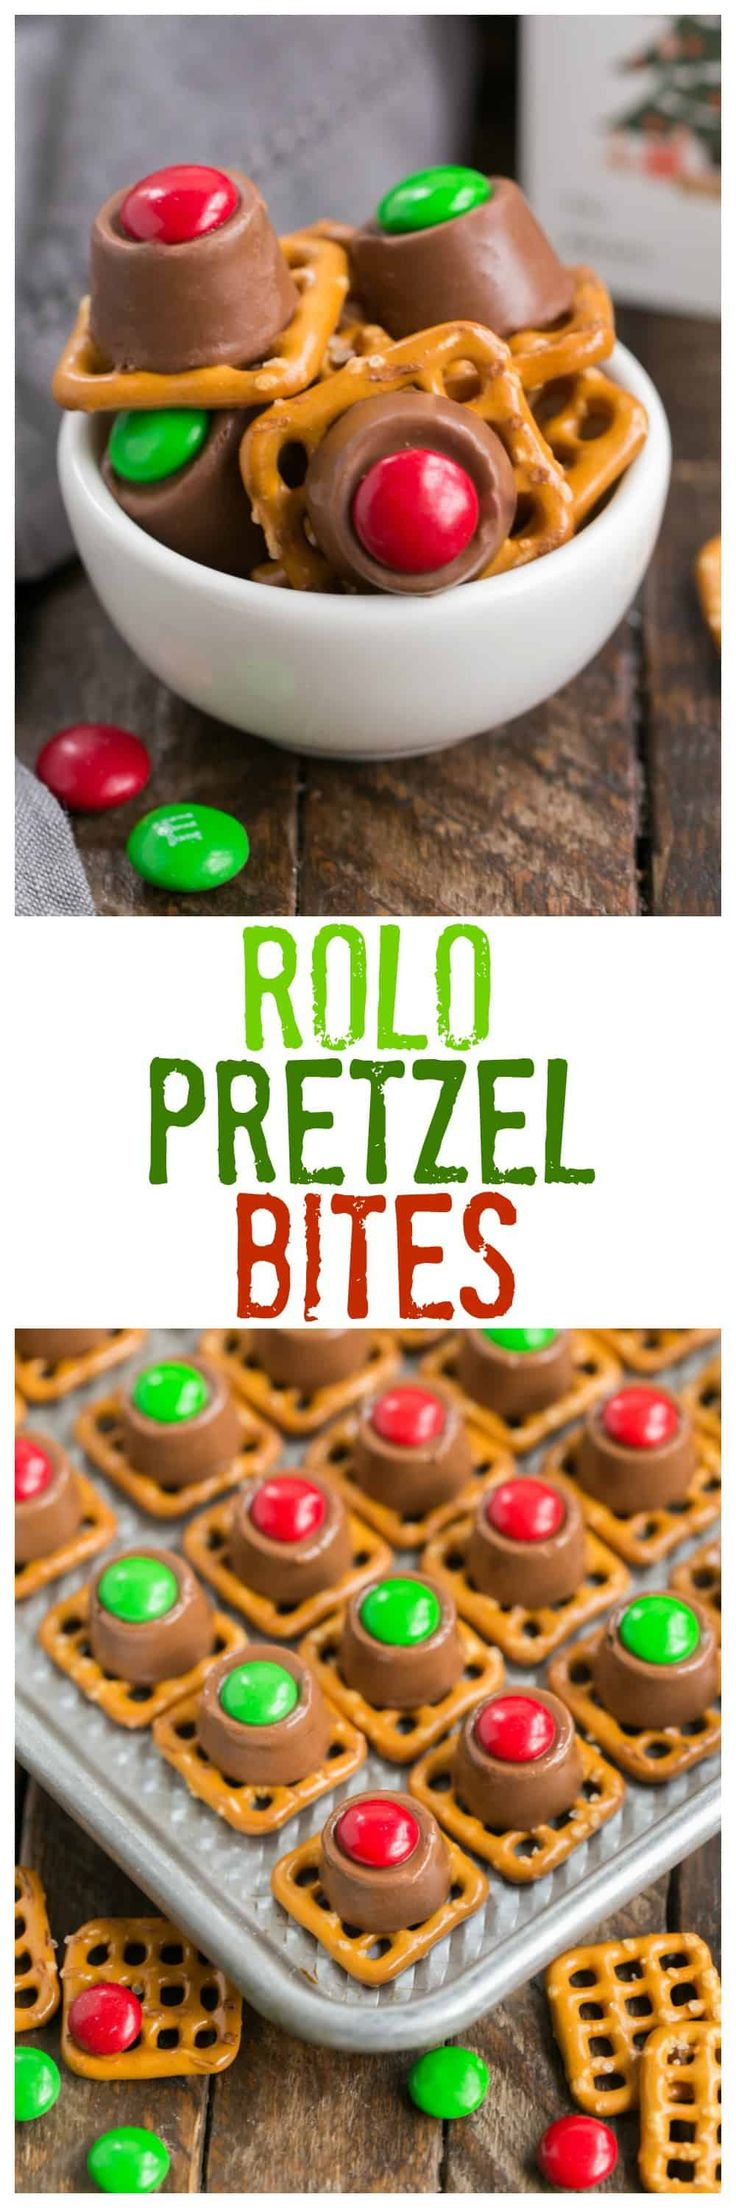 Rolo Pretzel Bites | A super easy, sweet and salty, chocolate, caramel and pretzel treat! #snacks #easyrecipes #pretzels